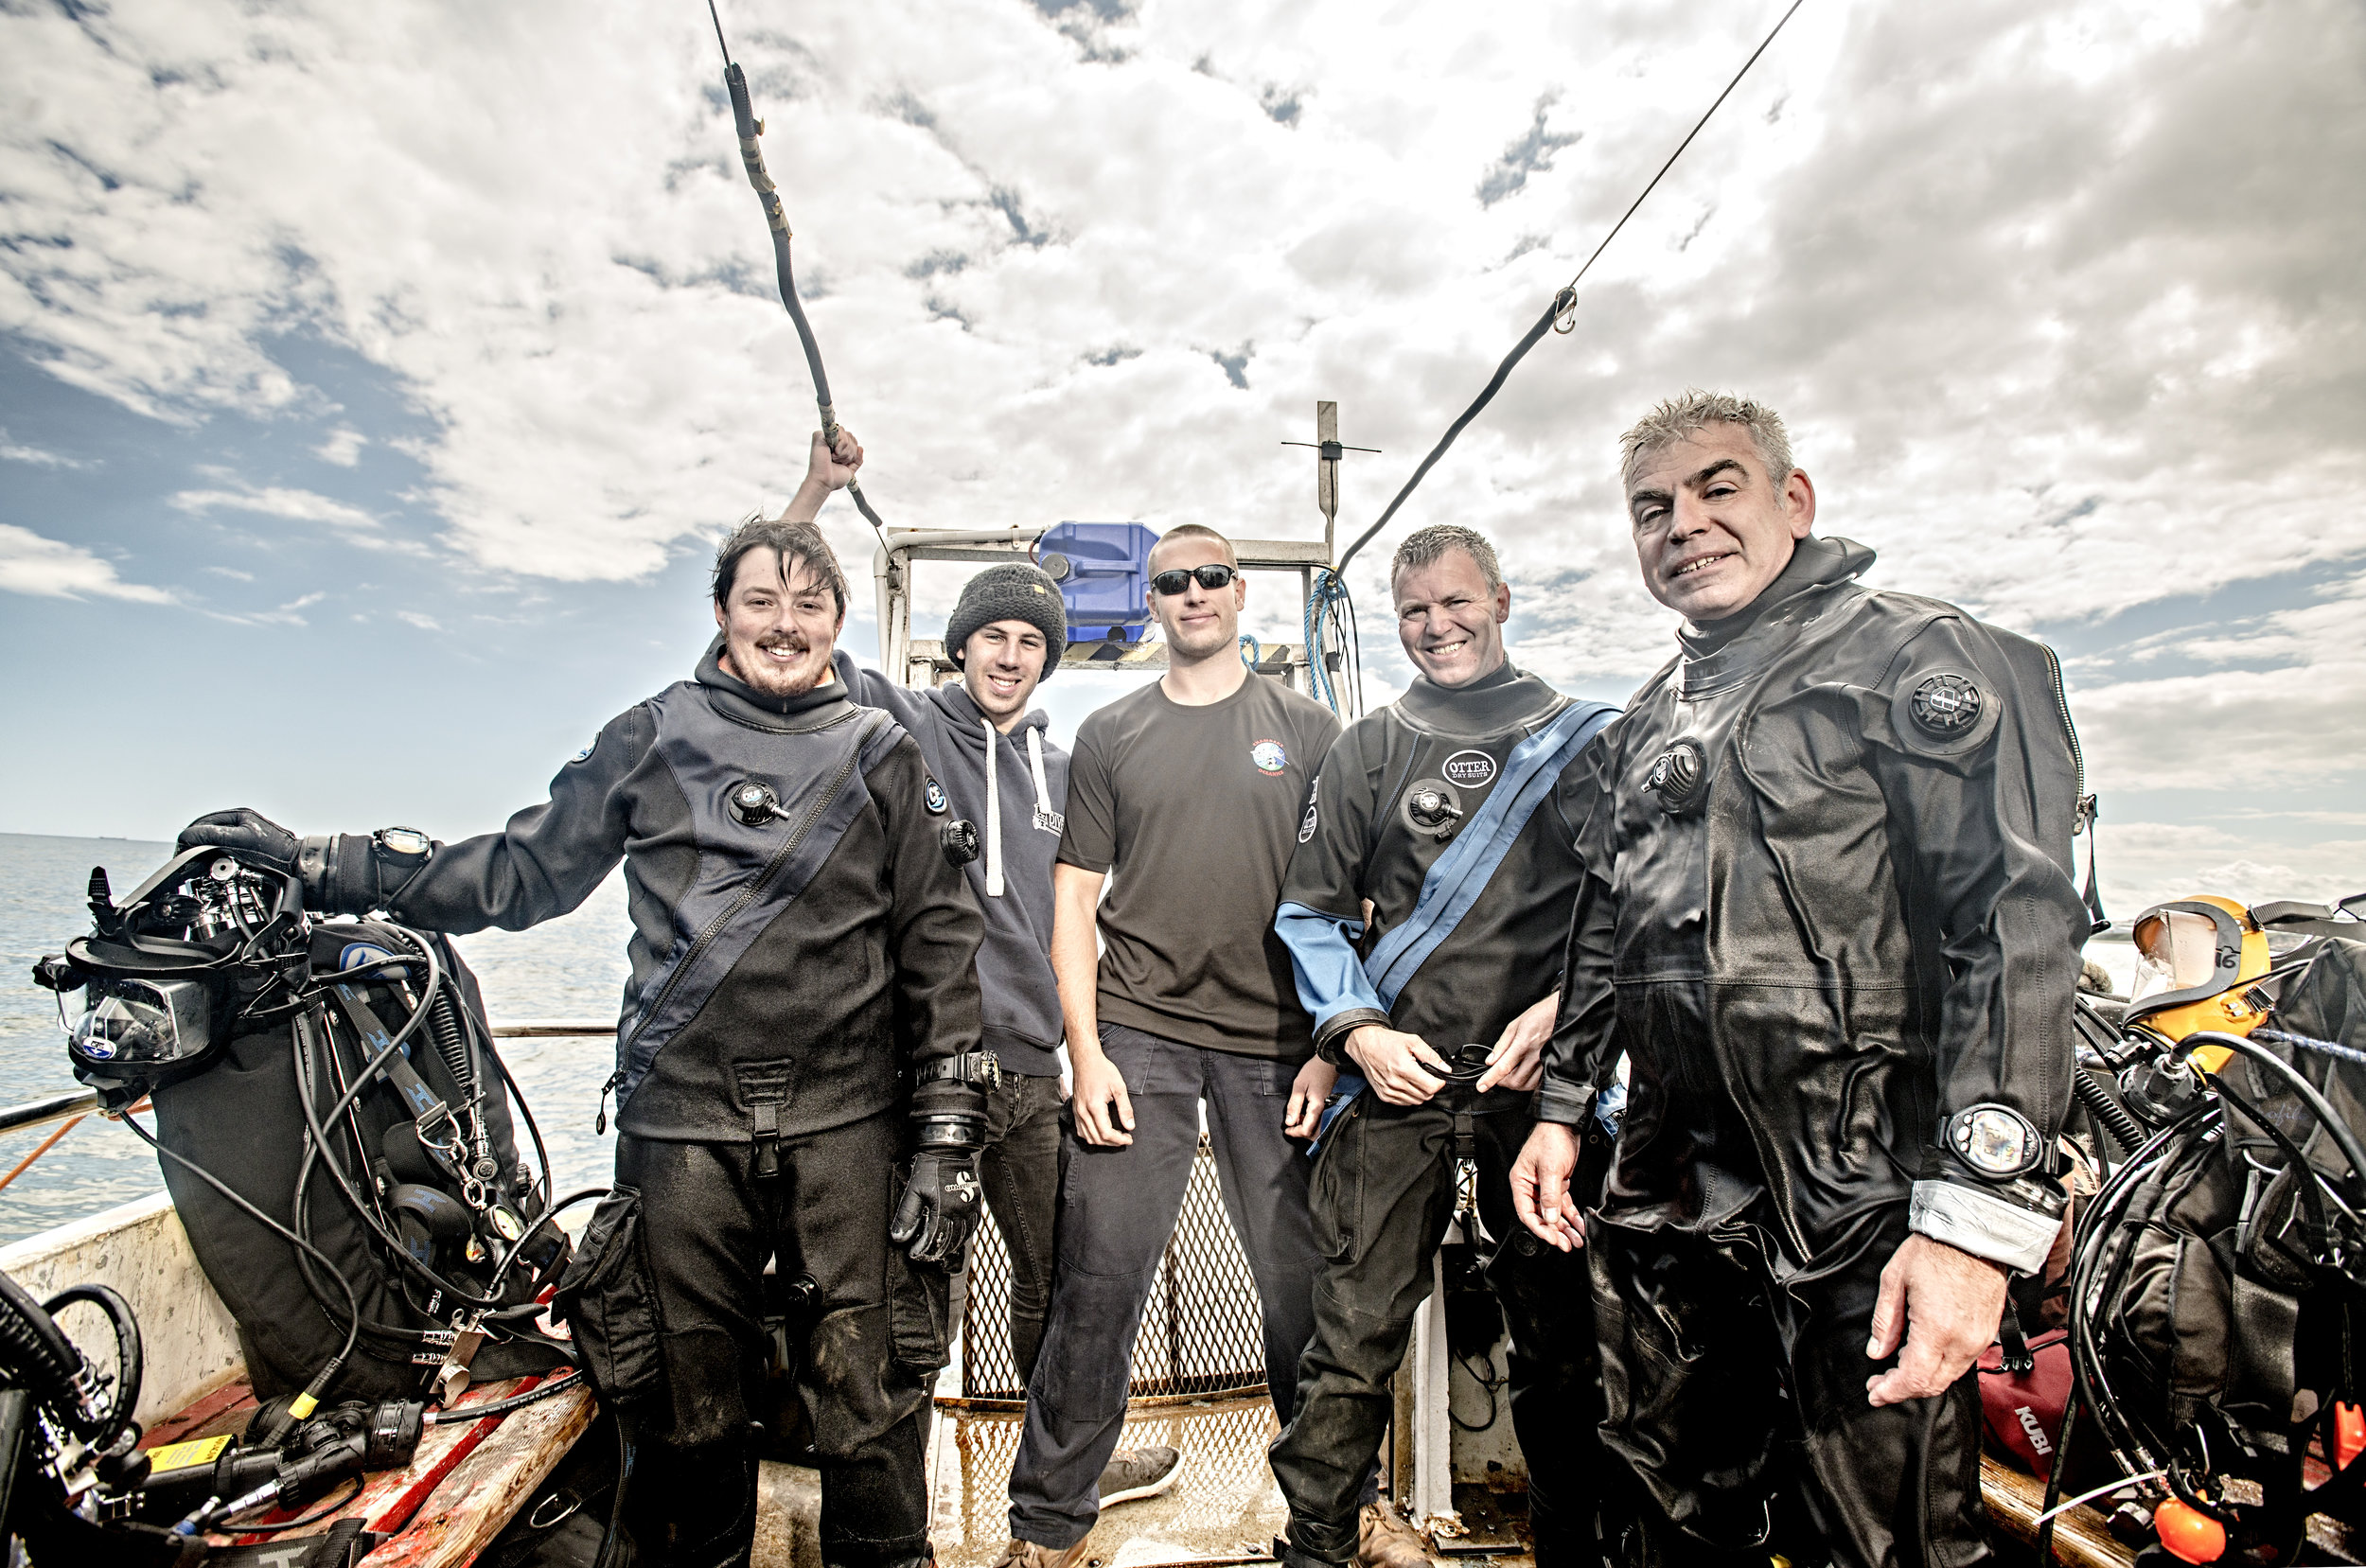 Heading out to Durham coastline - The Wildlife Trust's Dive Team photographed by John Ferguson